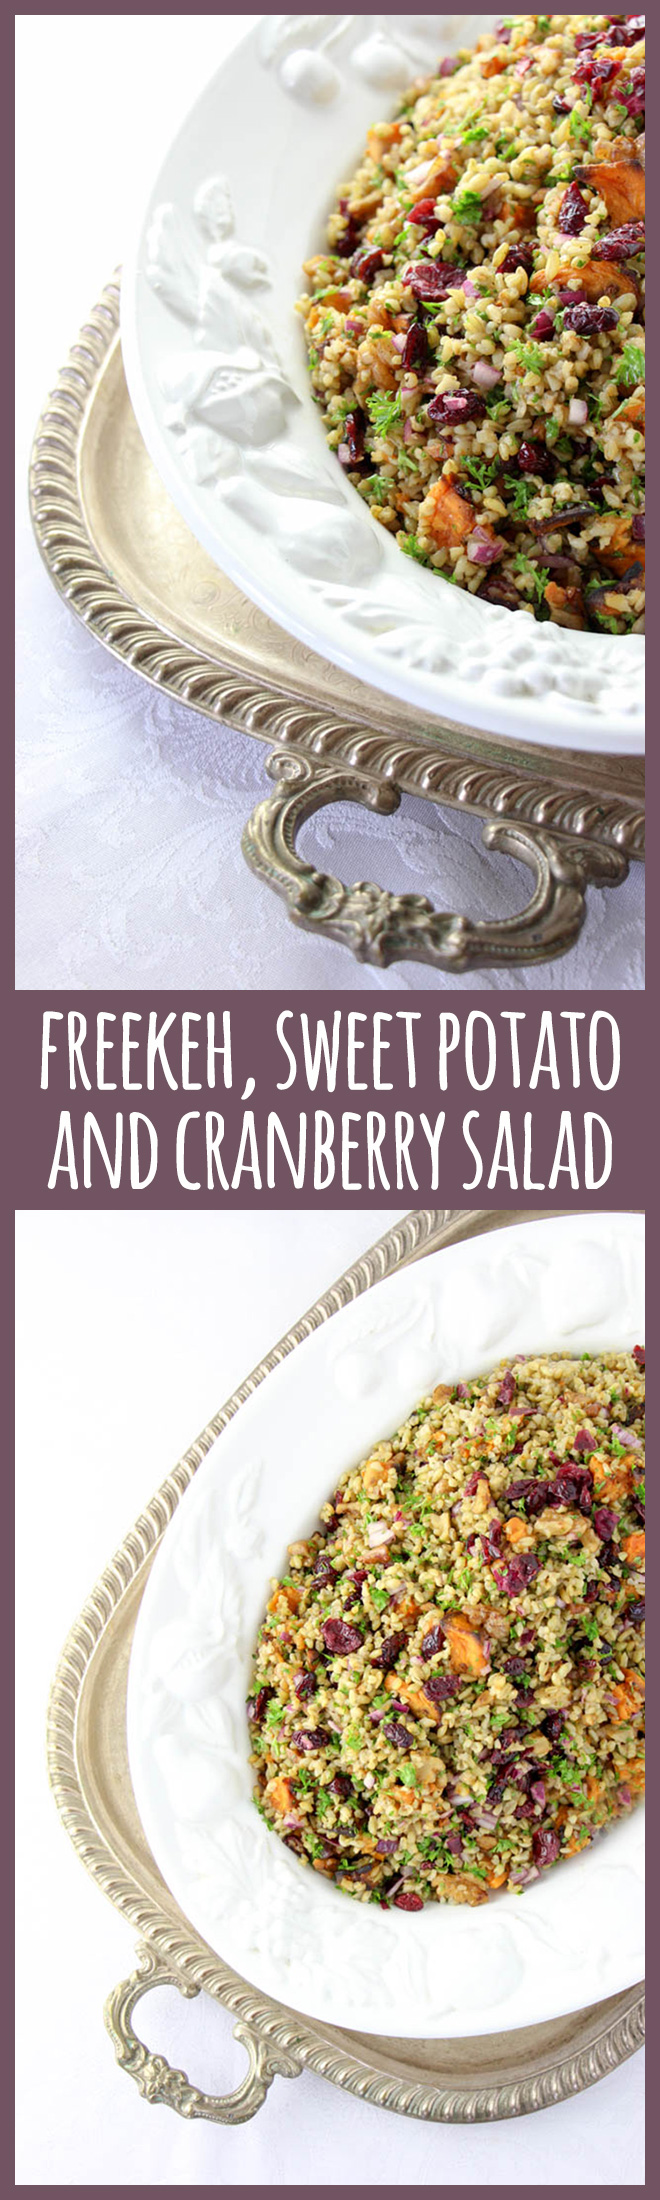 Oh yes, this festive combination of toasty freekeh, roast kumara, cranberries and walnuts with a maple and red wine vinegar dressing is fabulously delicious!